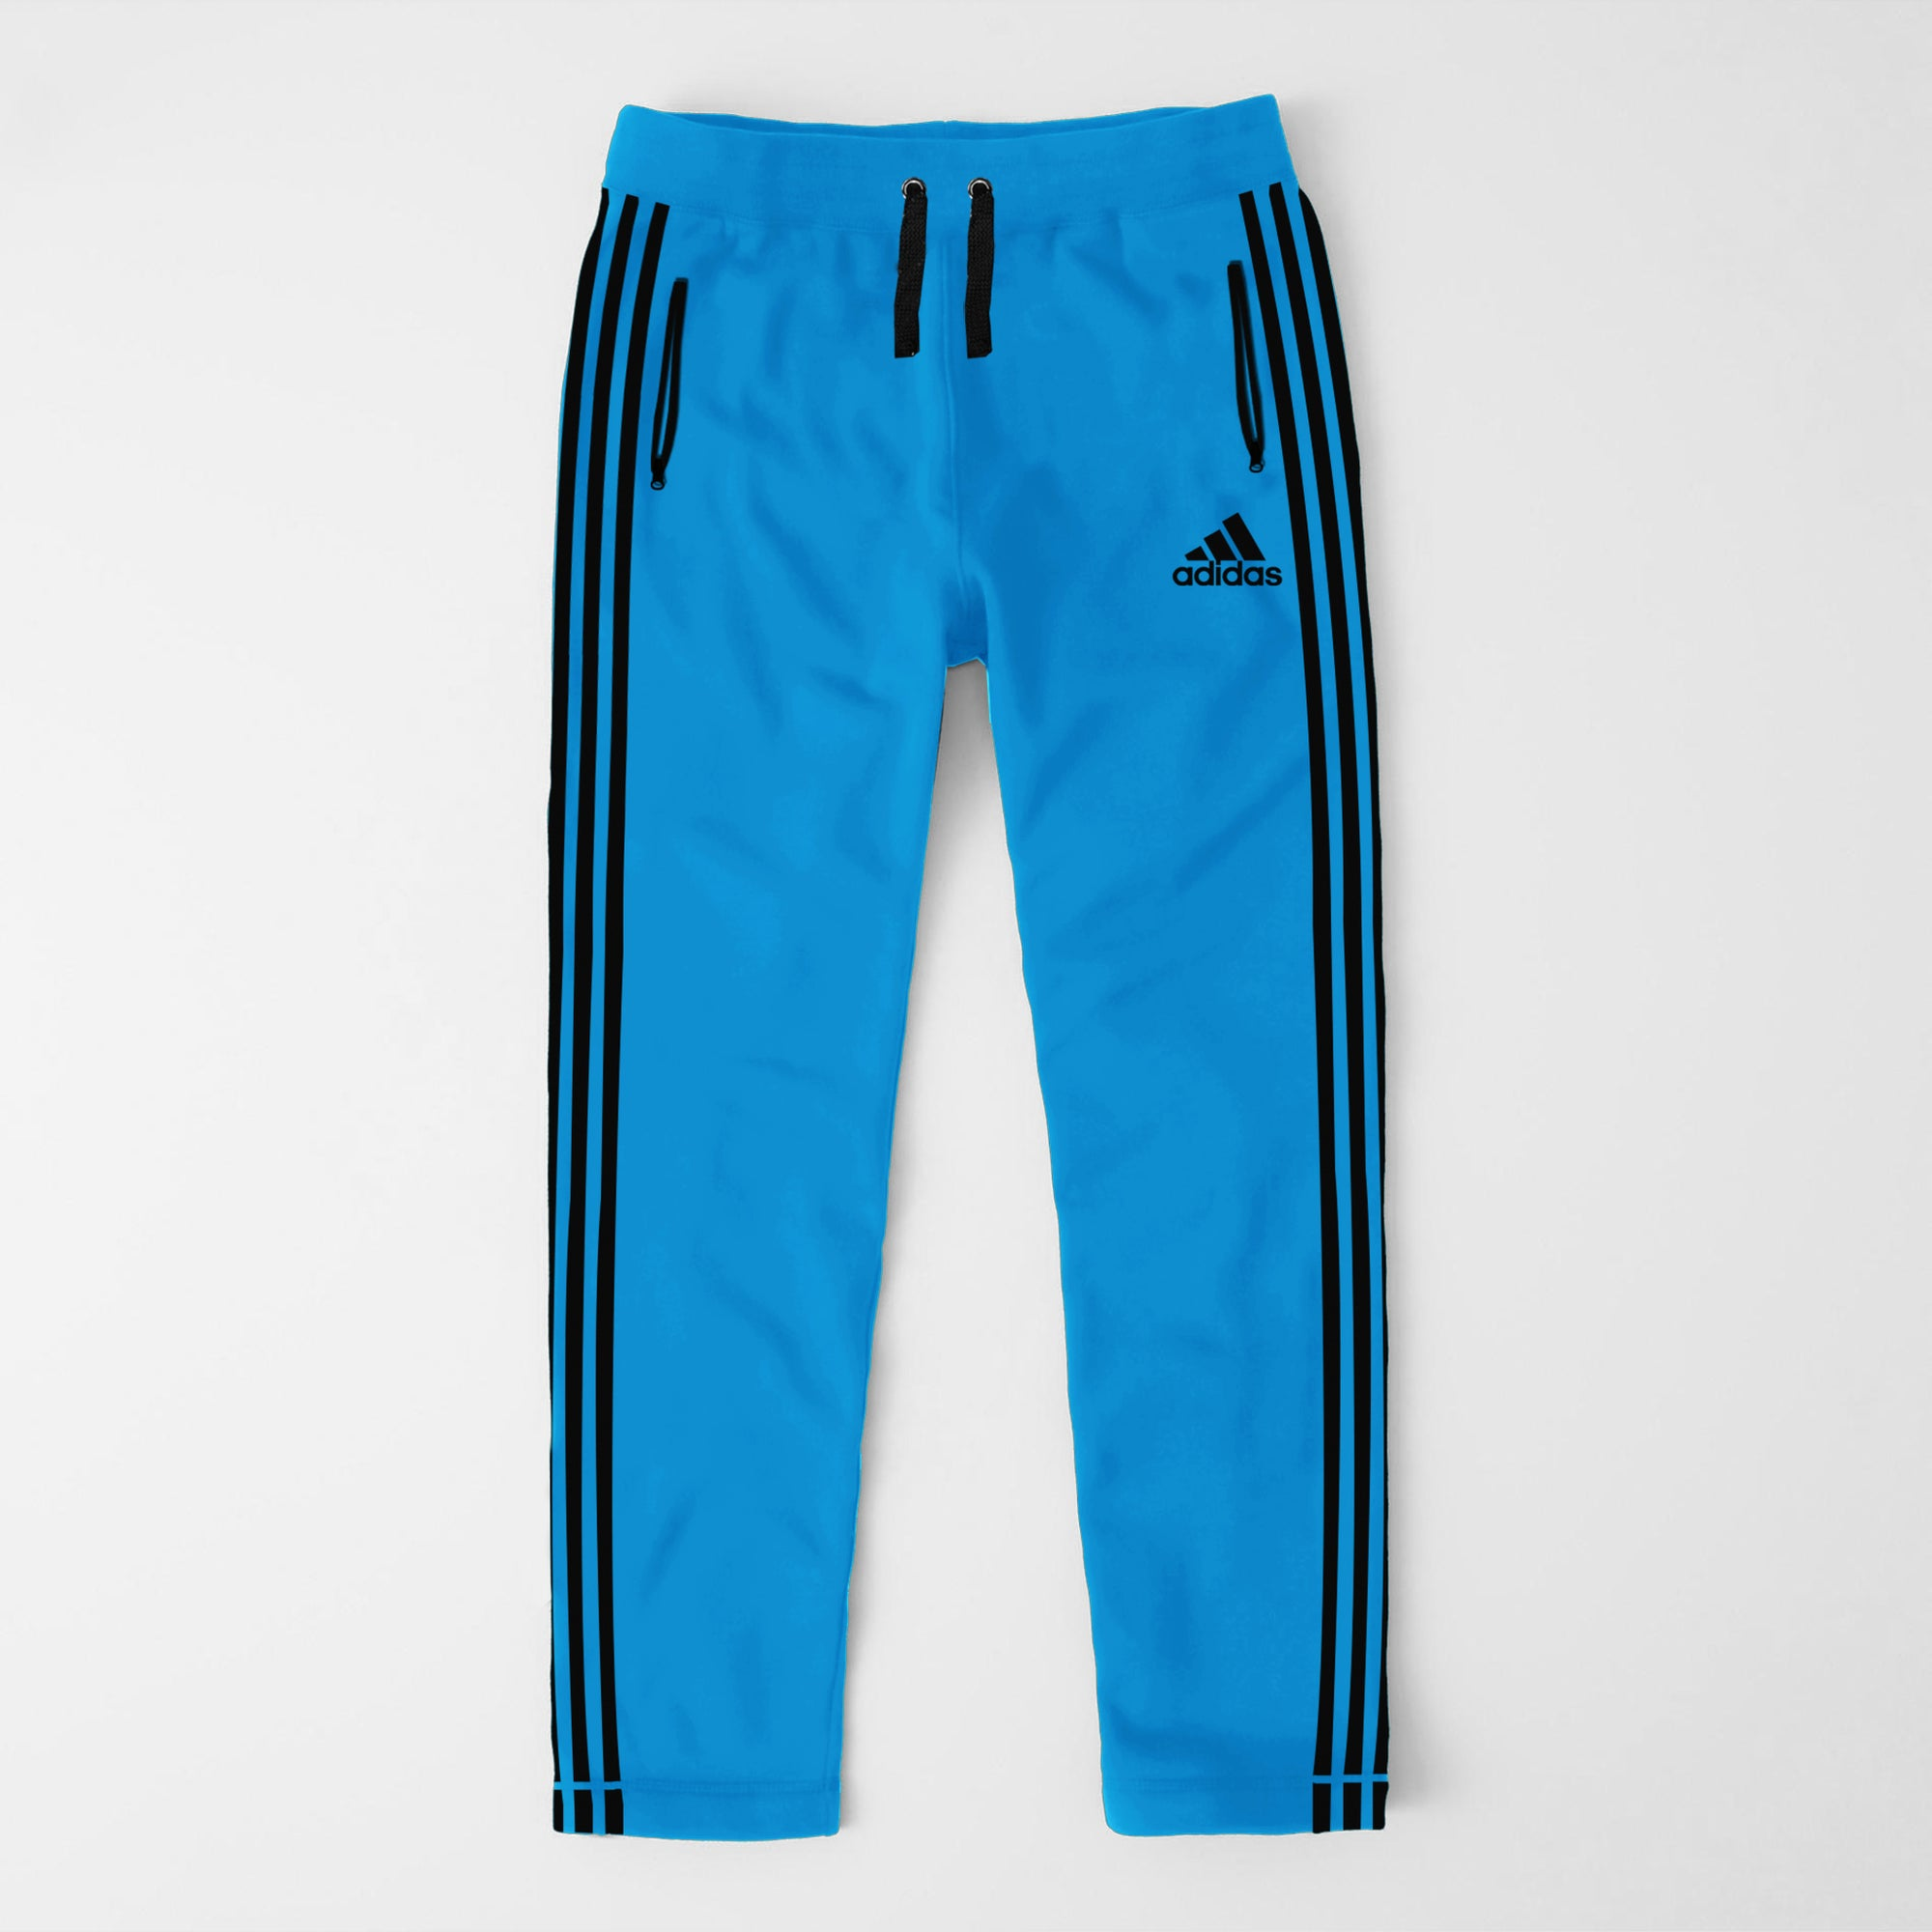 Adidas Single Jersey Regular Fit Trouser For Men-Blue With Black Stripes-SP455